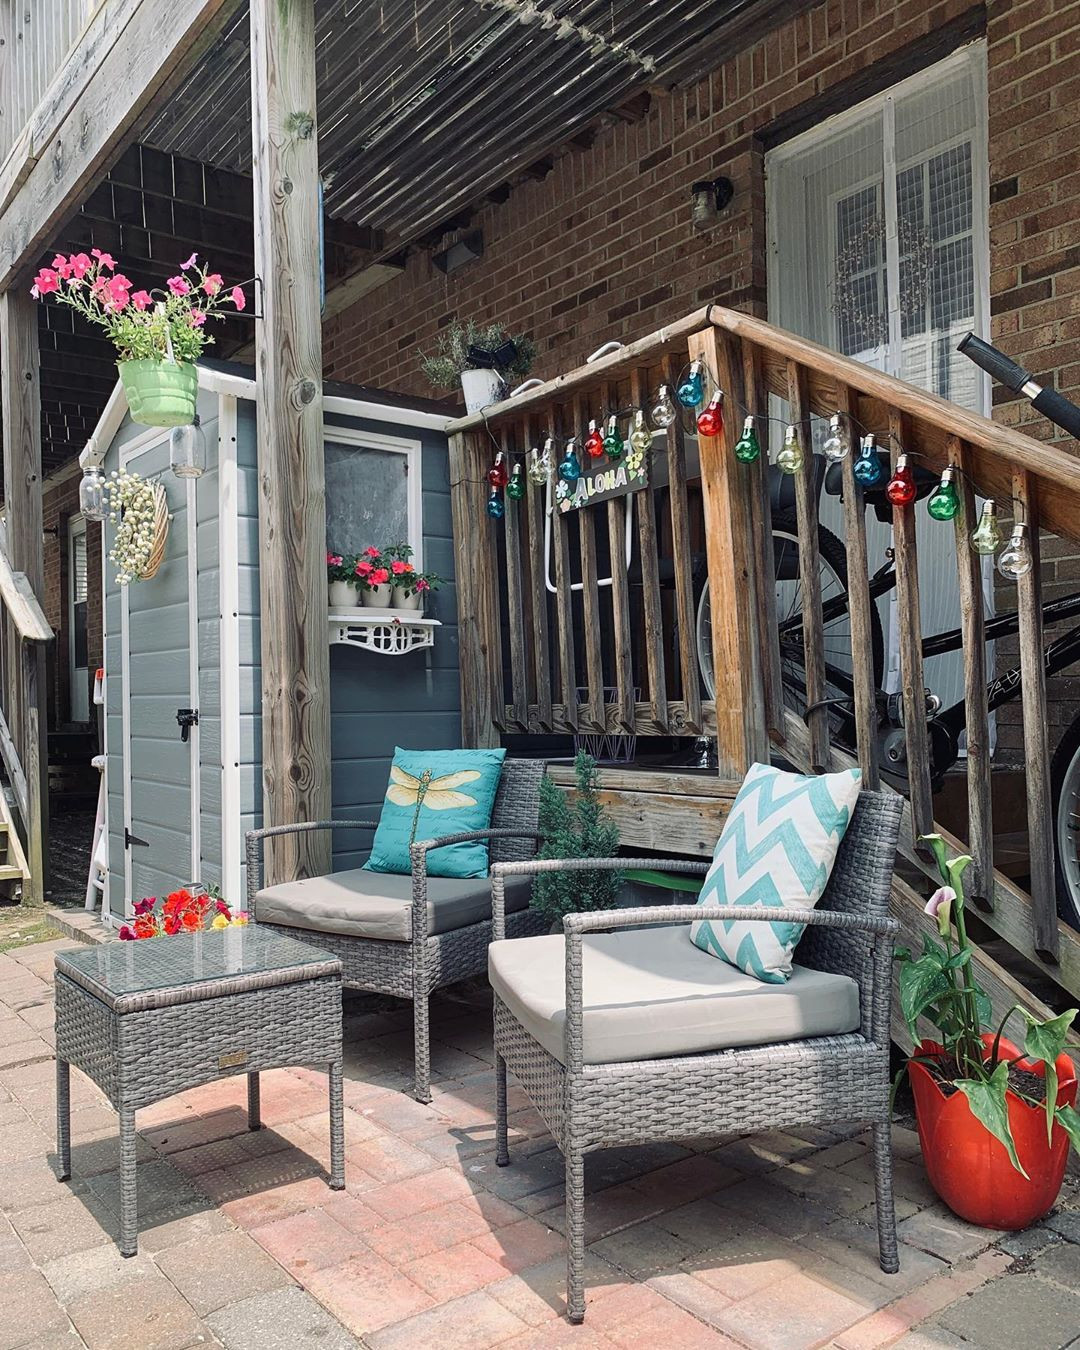 55 Small Backyards Ideas and Decorating Tips